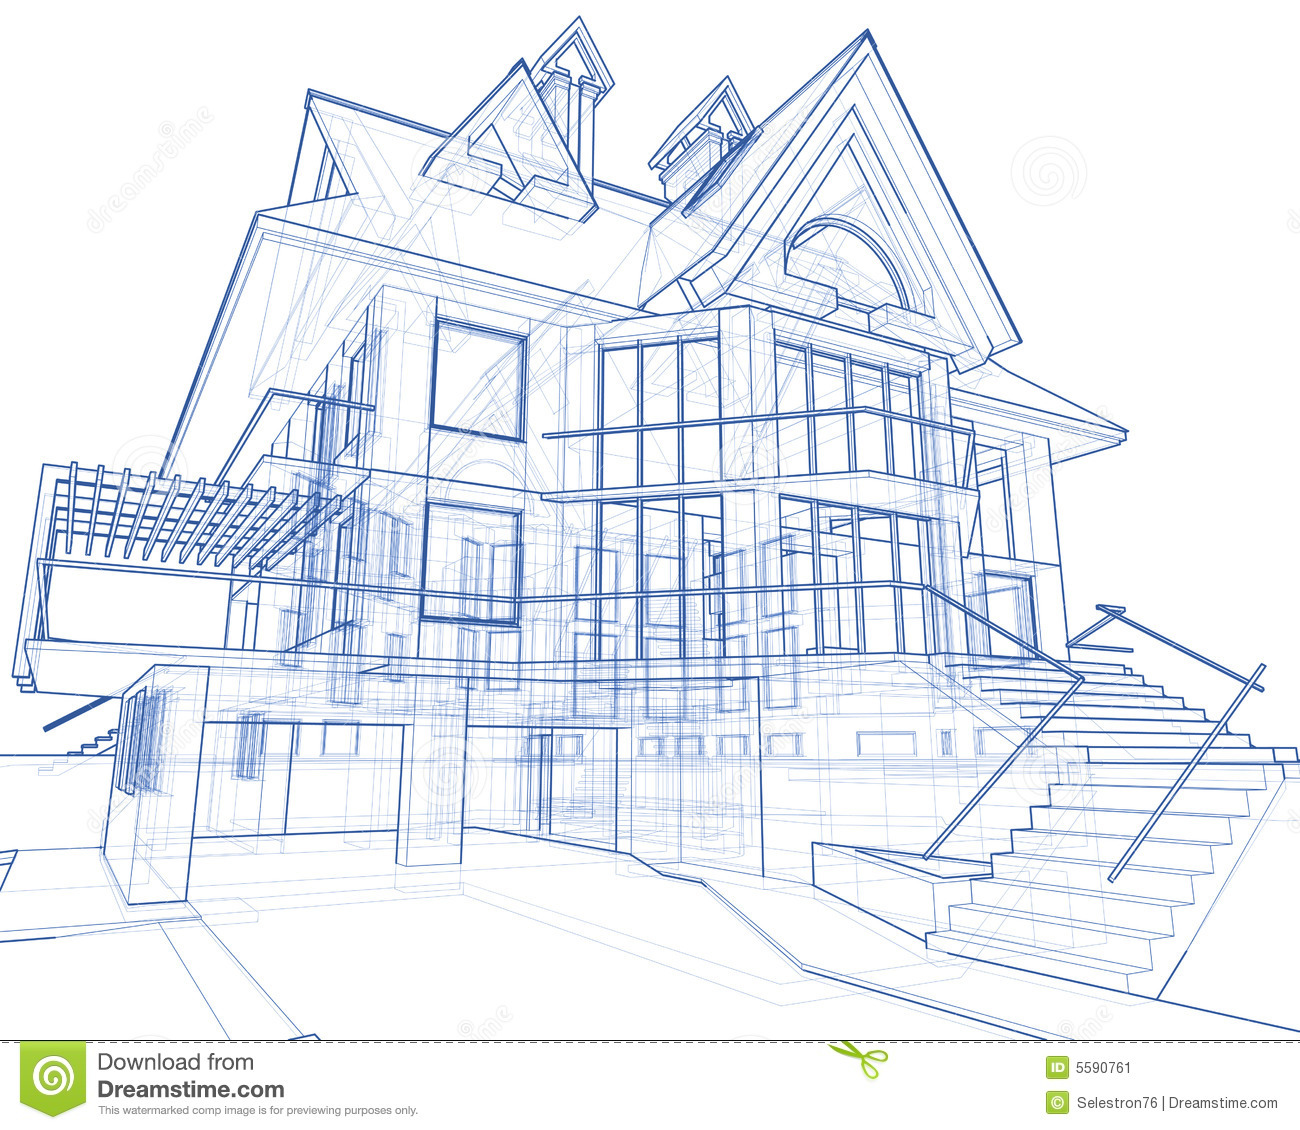 Https Www Dreamstime Com Stock Image House Architecture Blueprint Image5590761